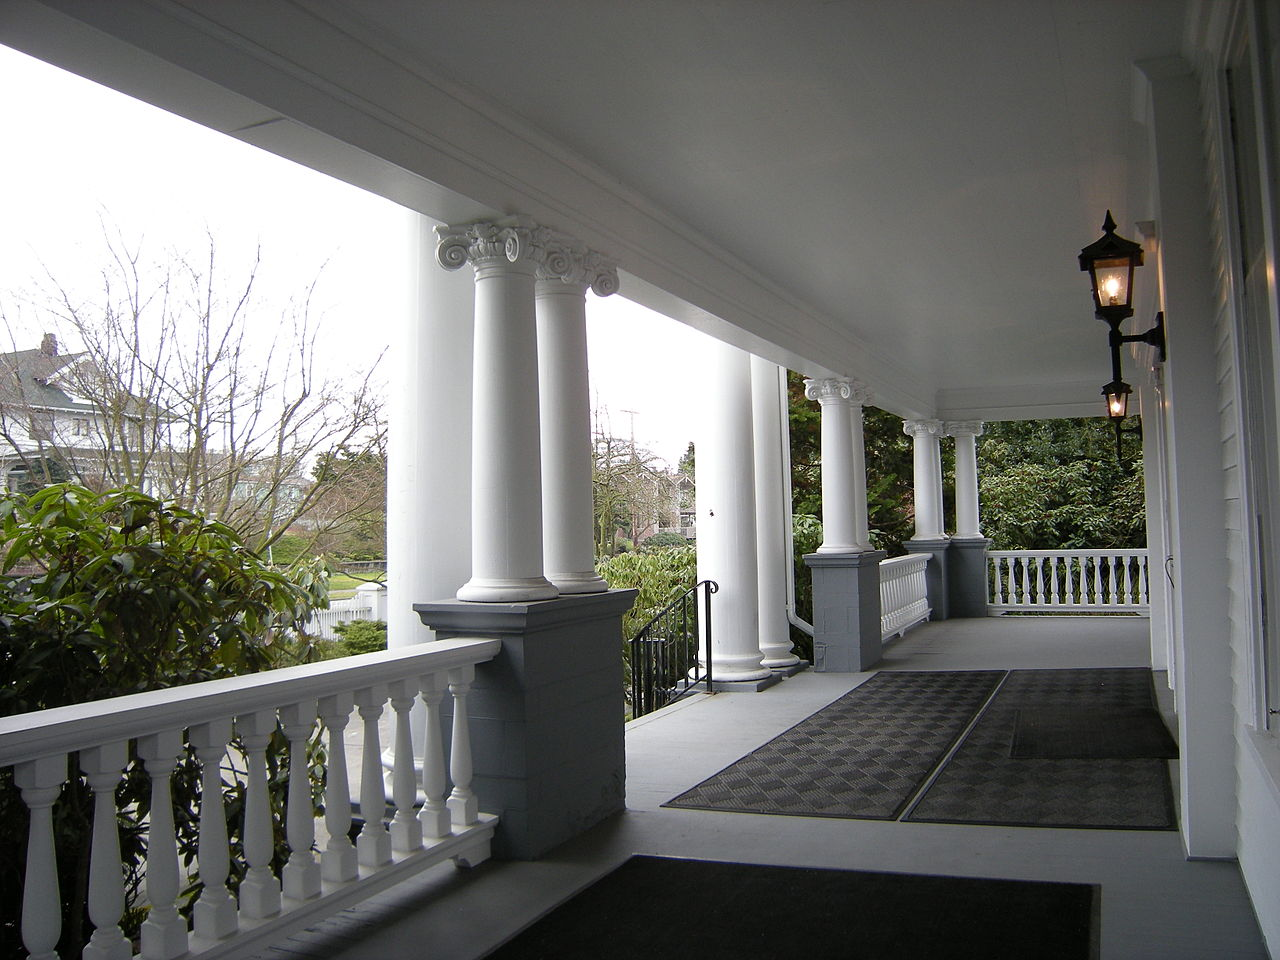 The house features a two-story porch with Corinthian and Ionic columsn.